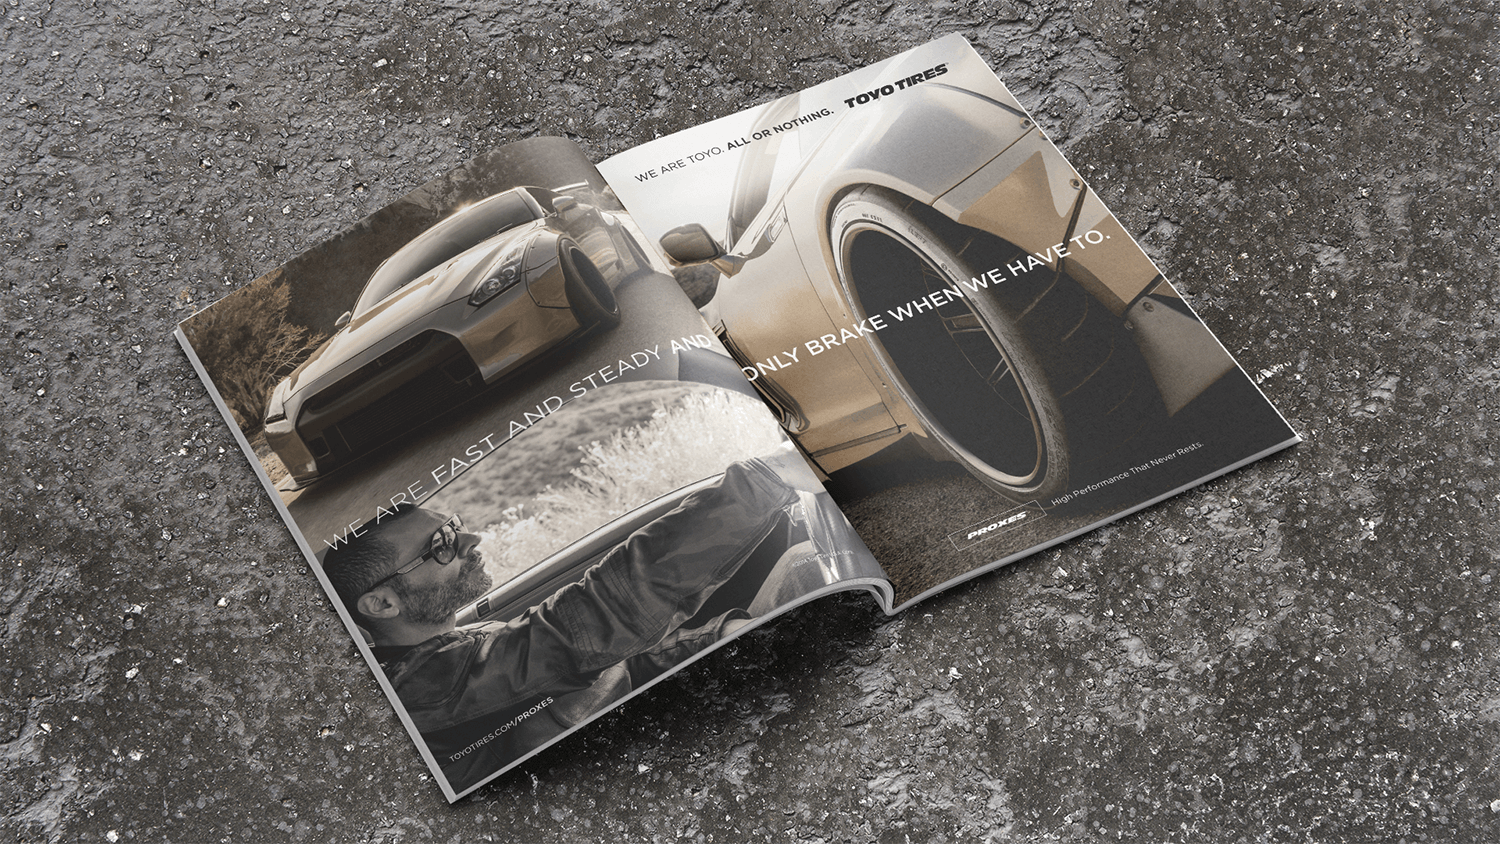 Magazine ad spread featuring Toyo Tires on a Nissan Skyline GT-R